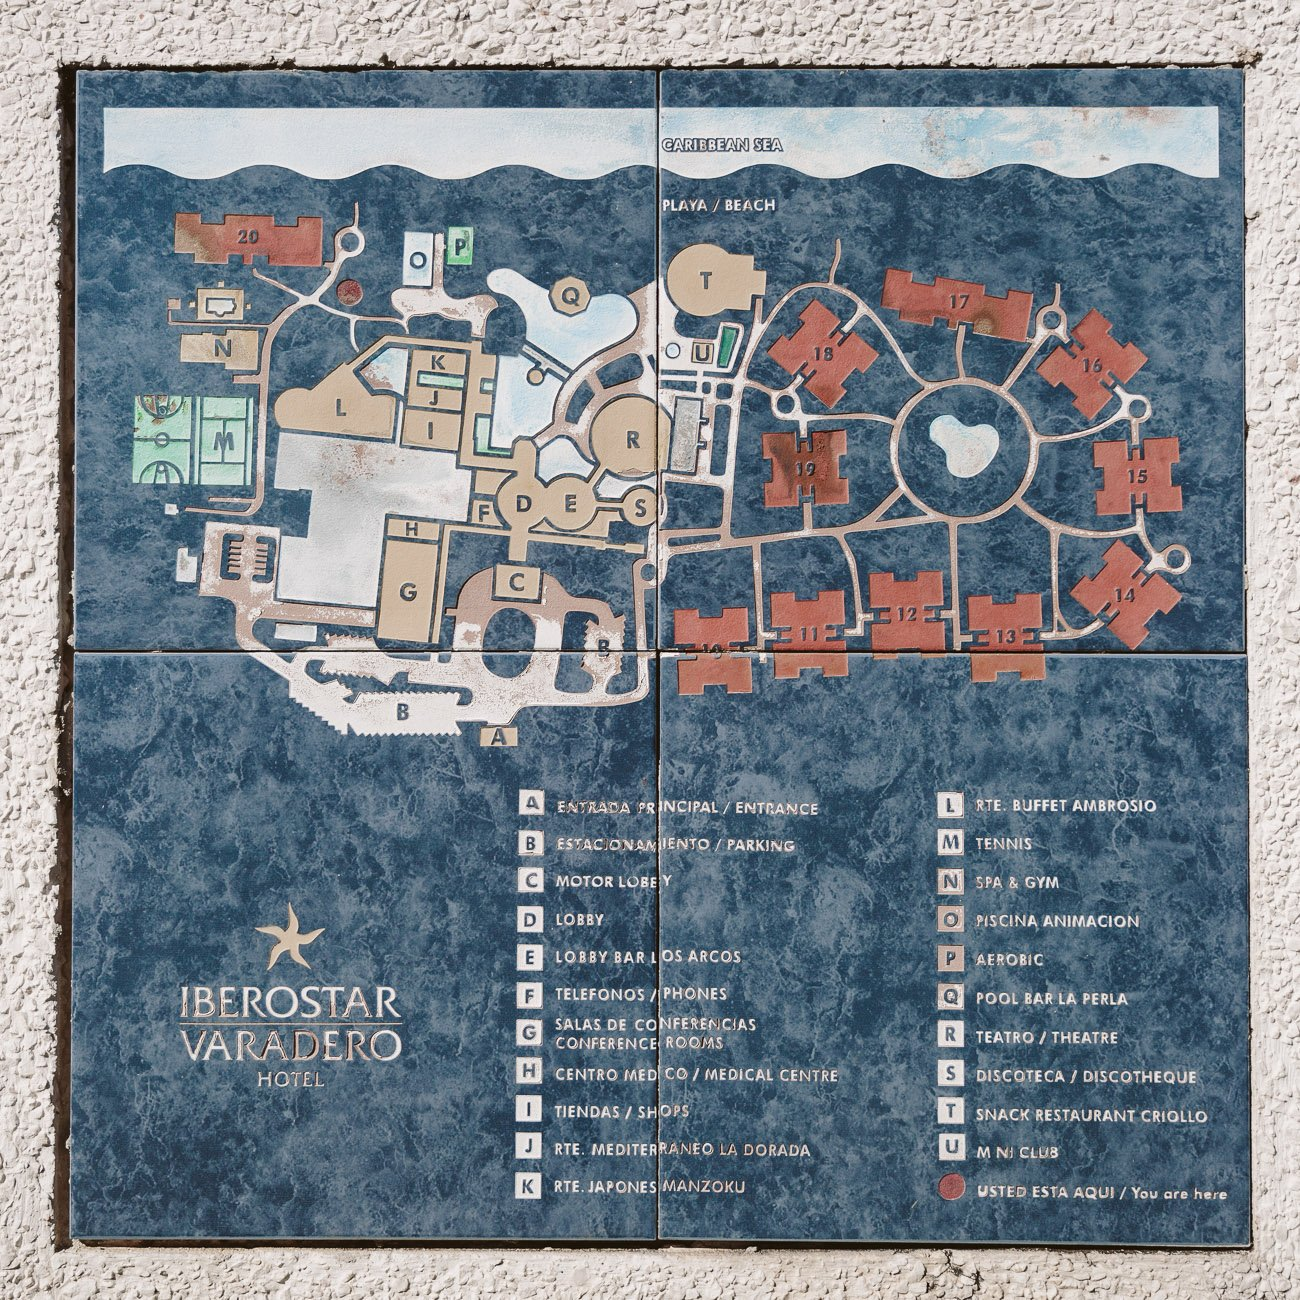 Building plan of Iberostar Varadero